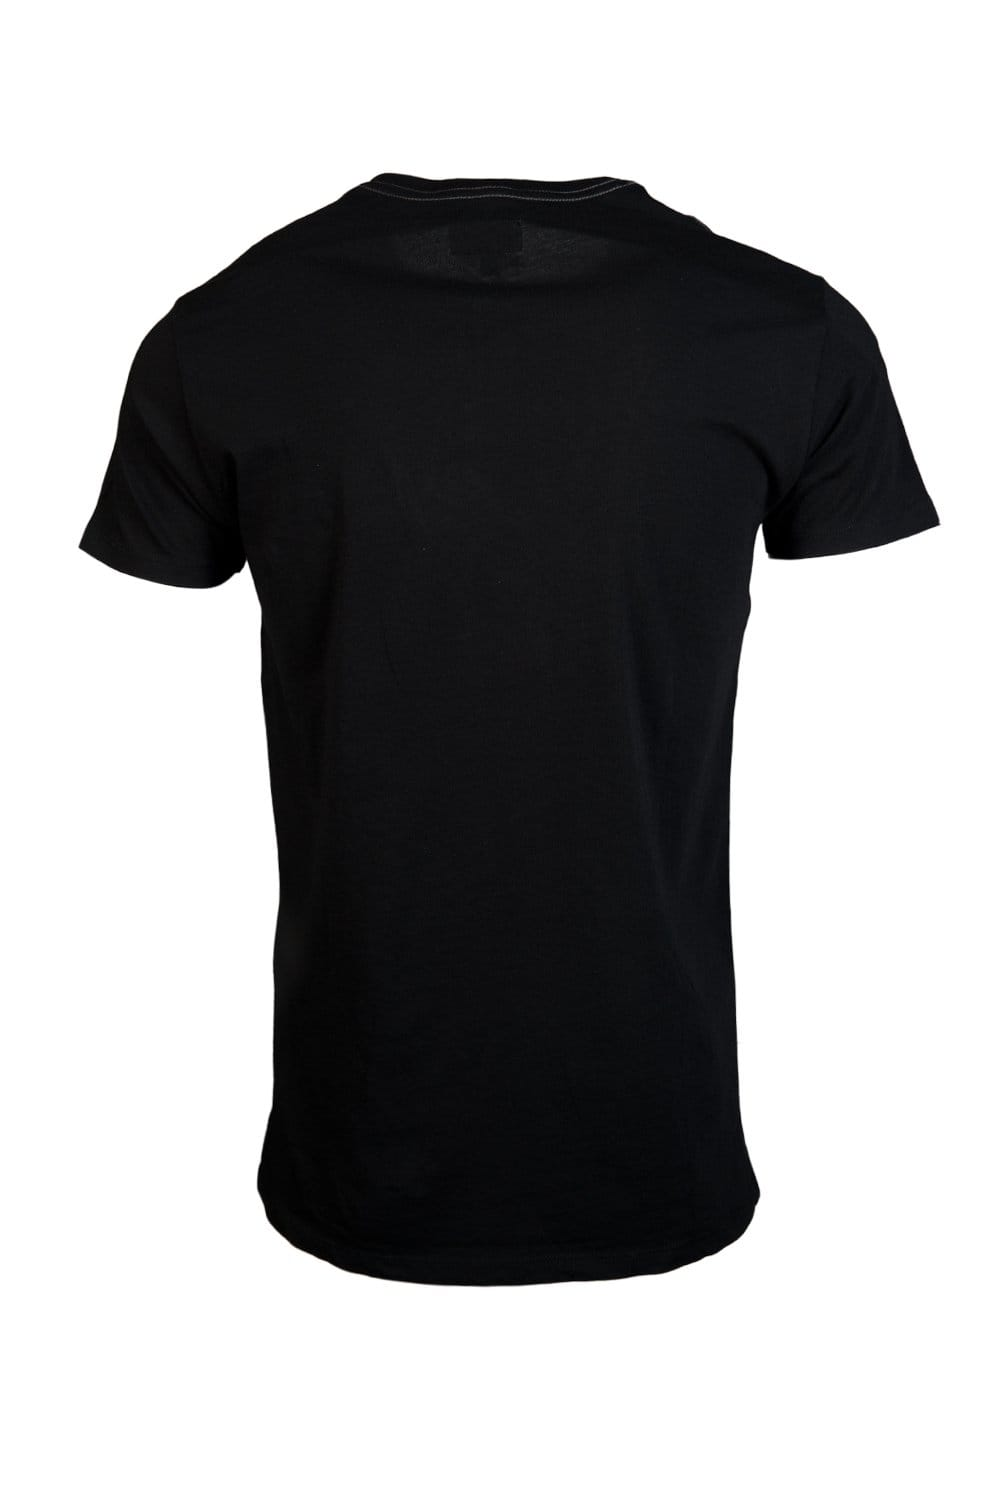 Black t shirt armani - Armani Jeans Printed Logo Design T Shirt In Black And Navy Blue A6h13mv